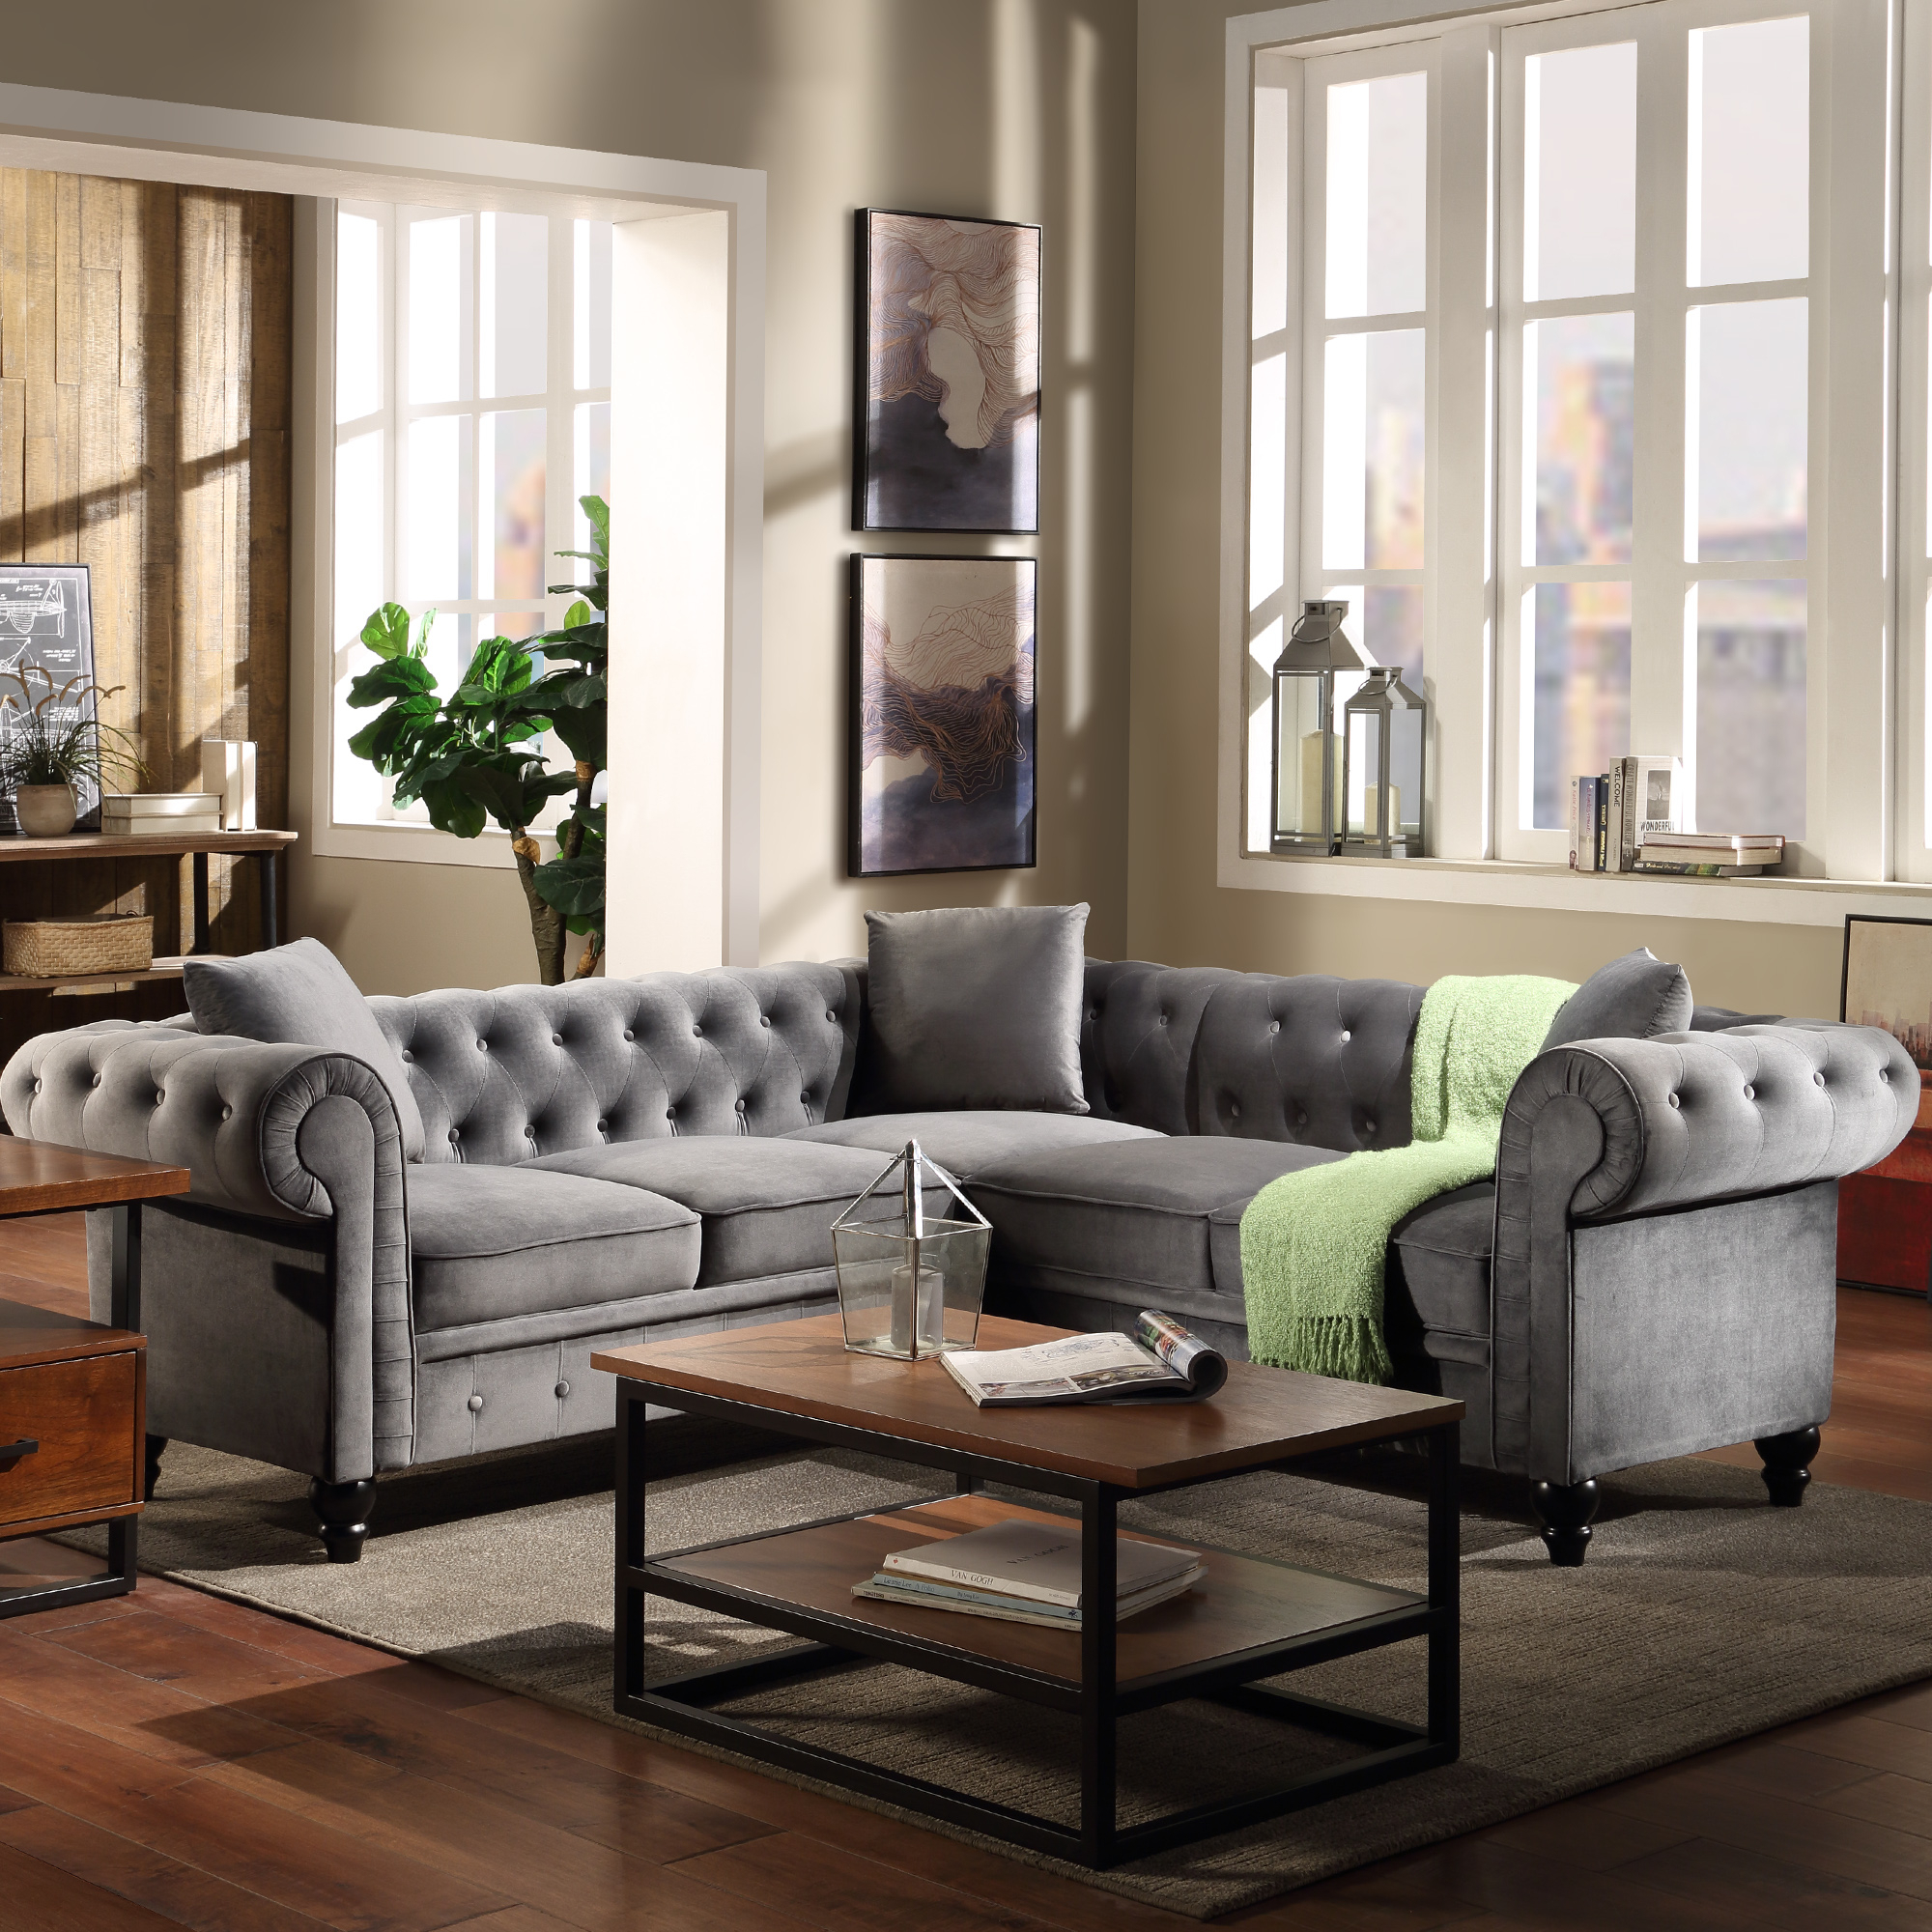 Noa Sectional Sofas With Ottoman Gray Throughout Favorite Chesterfield Sofa For Living Room, Mid Century L Shape (View 5 of 25)